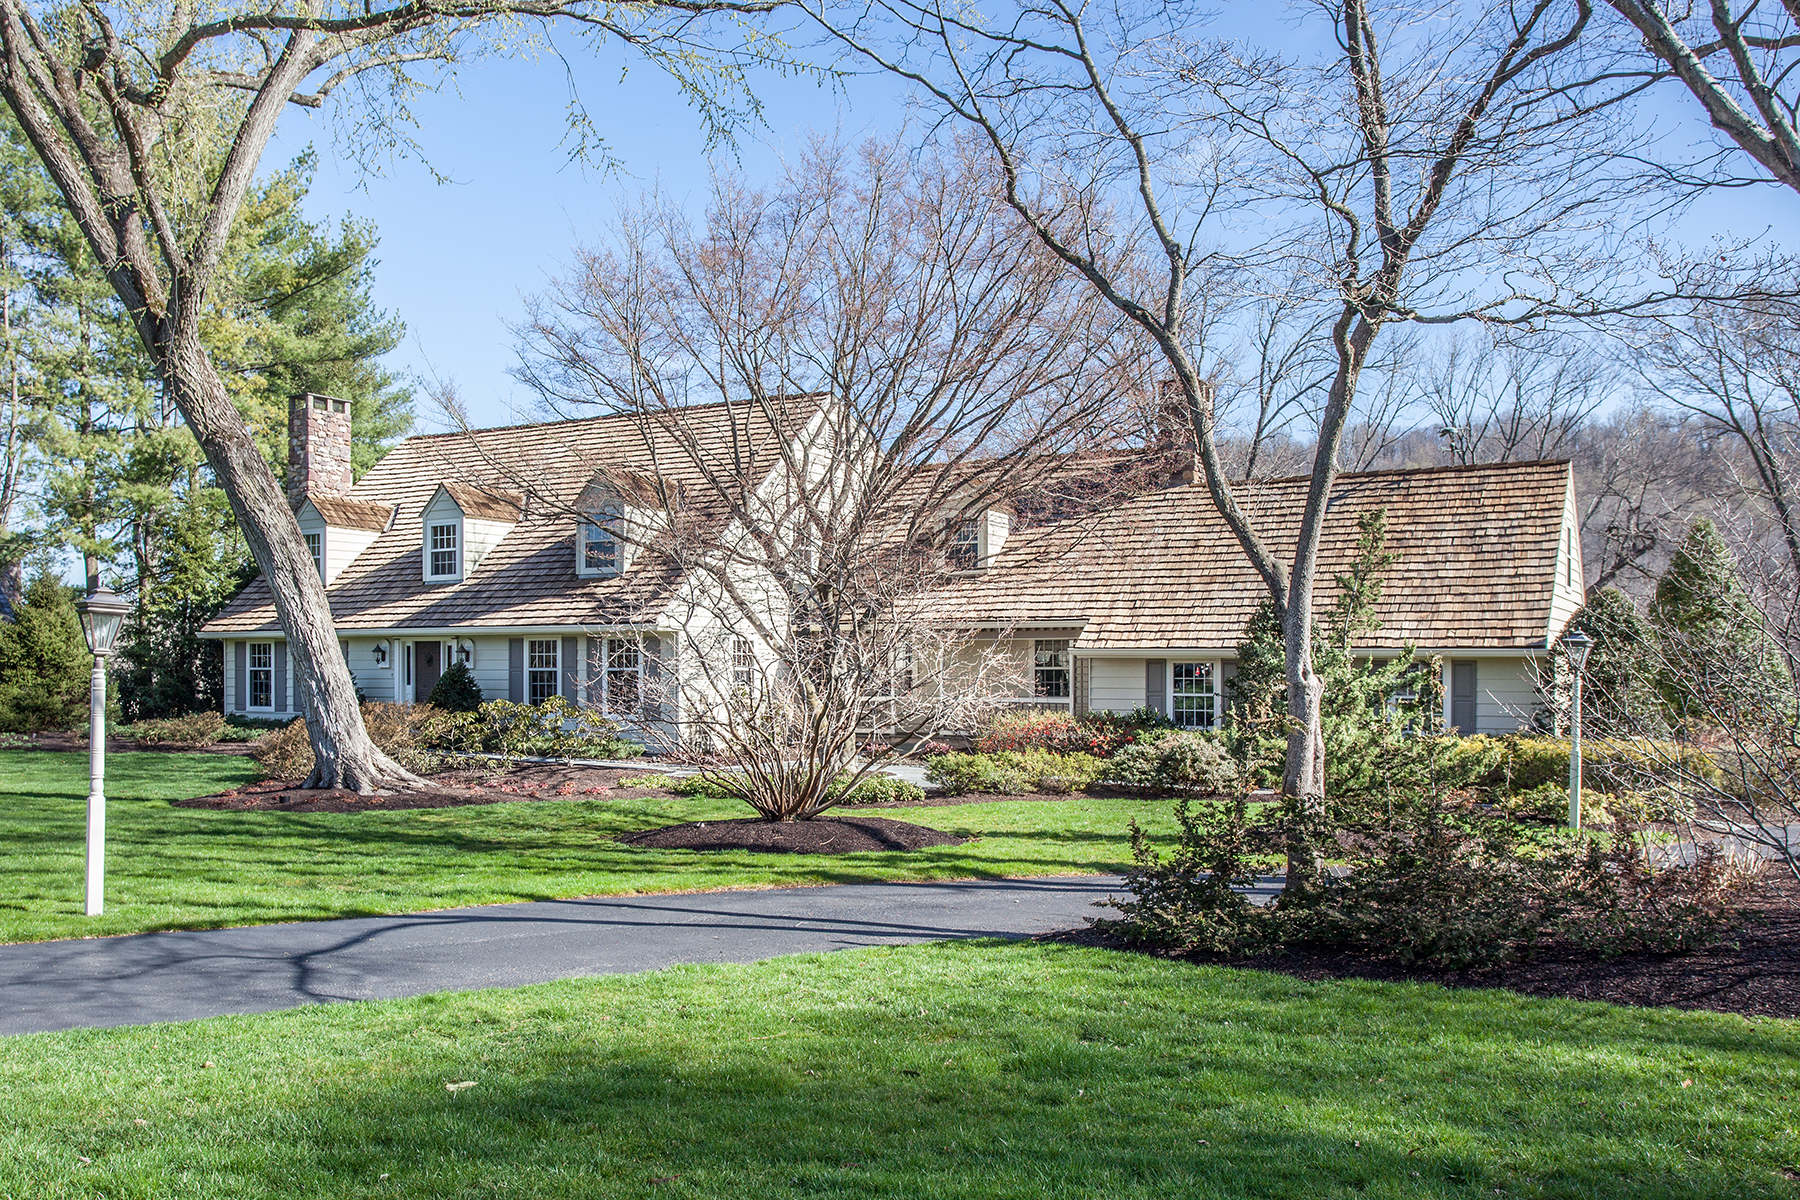 Single Family Home for Sale at New Hope, PA 106 Cedar Glen Drive New Hope, Pennsylvania, 18938 United States